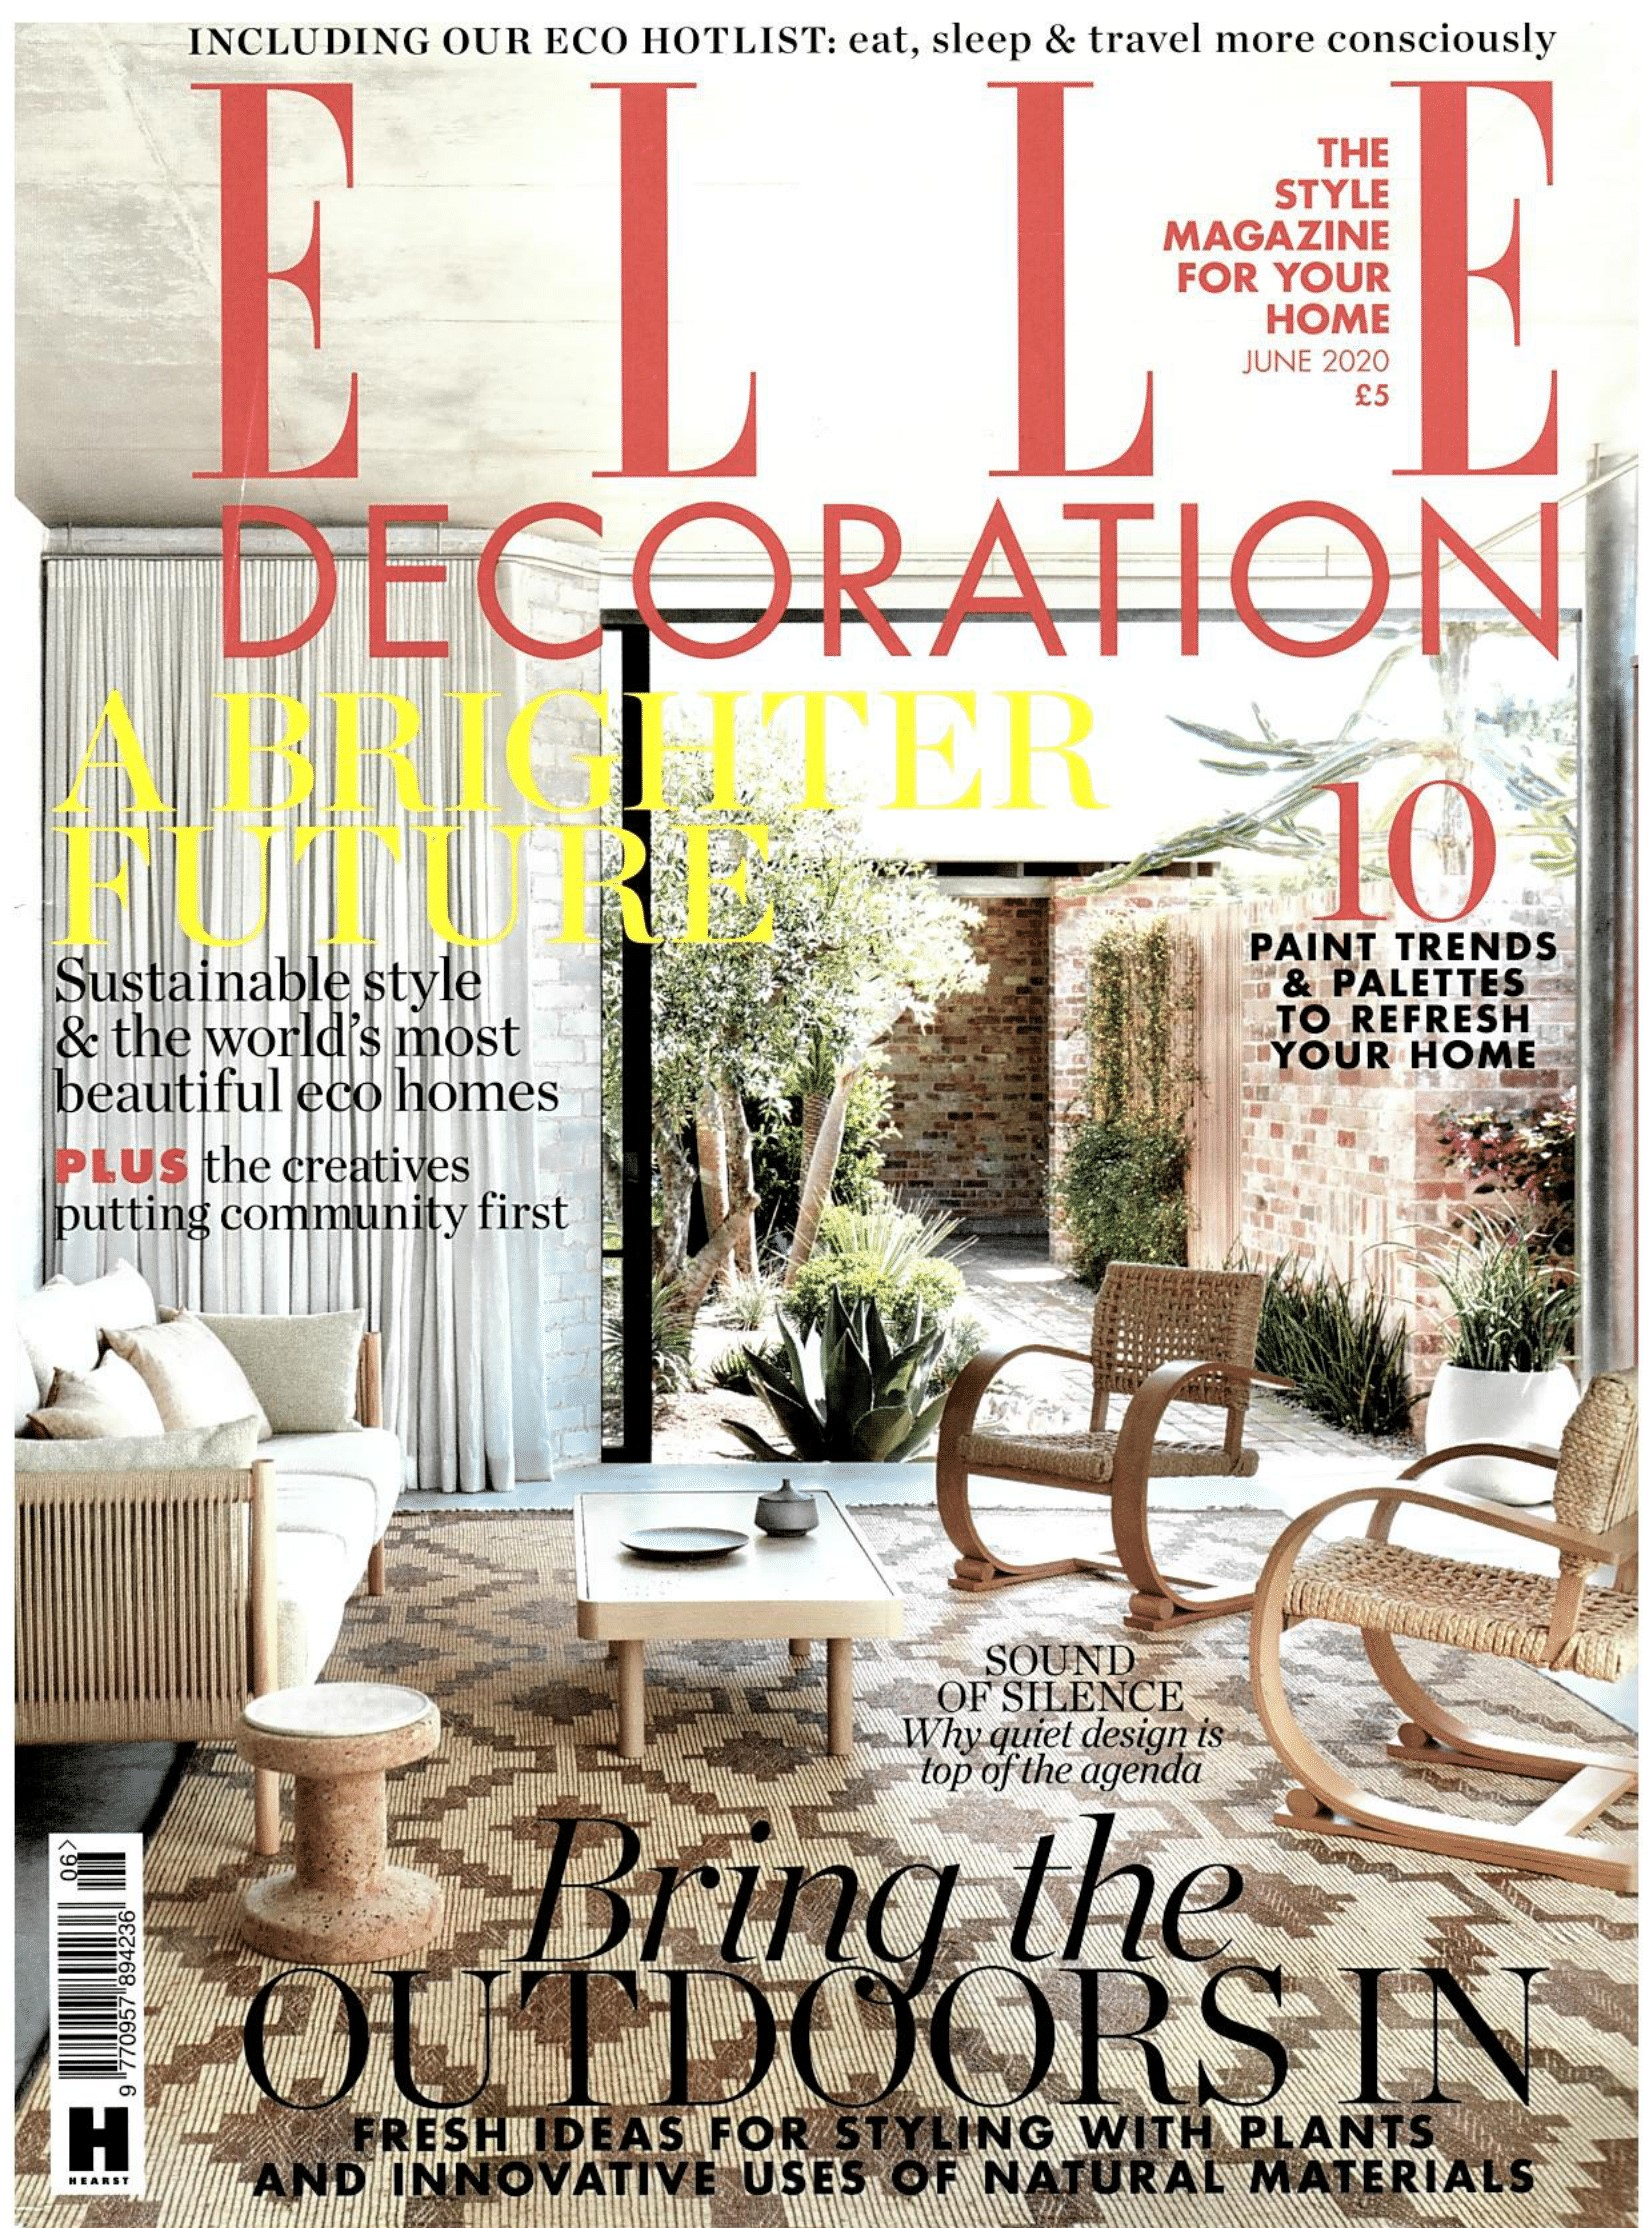 Elle Decoration Magazine June 2020 Cover 1